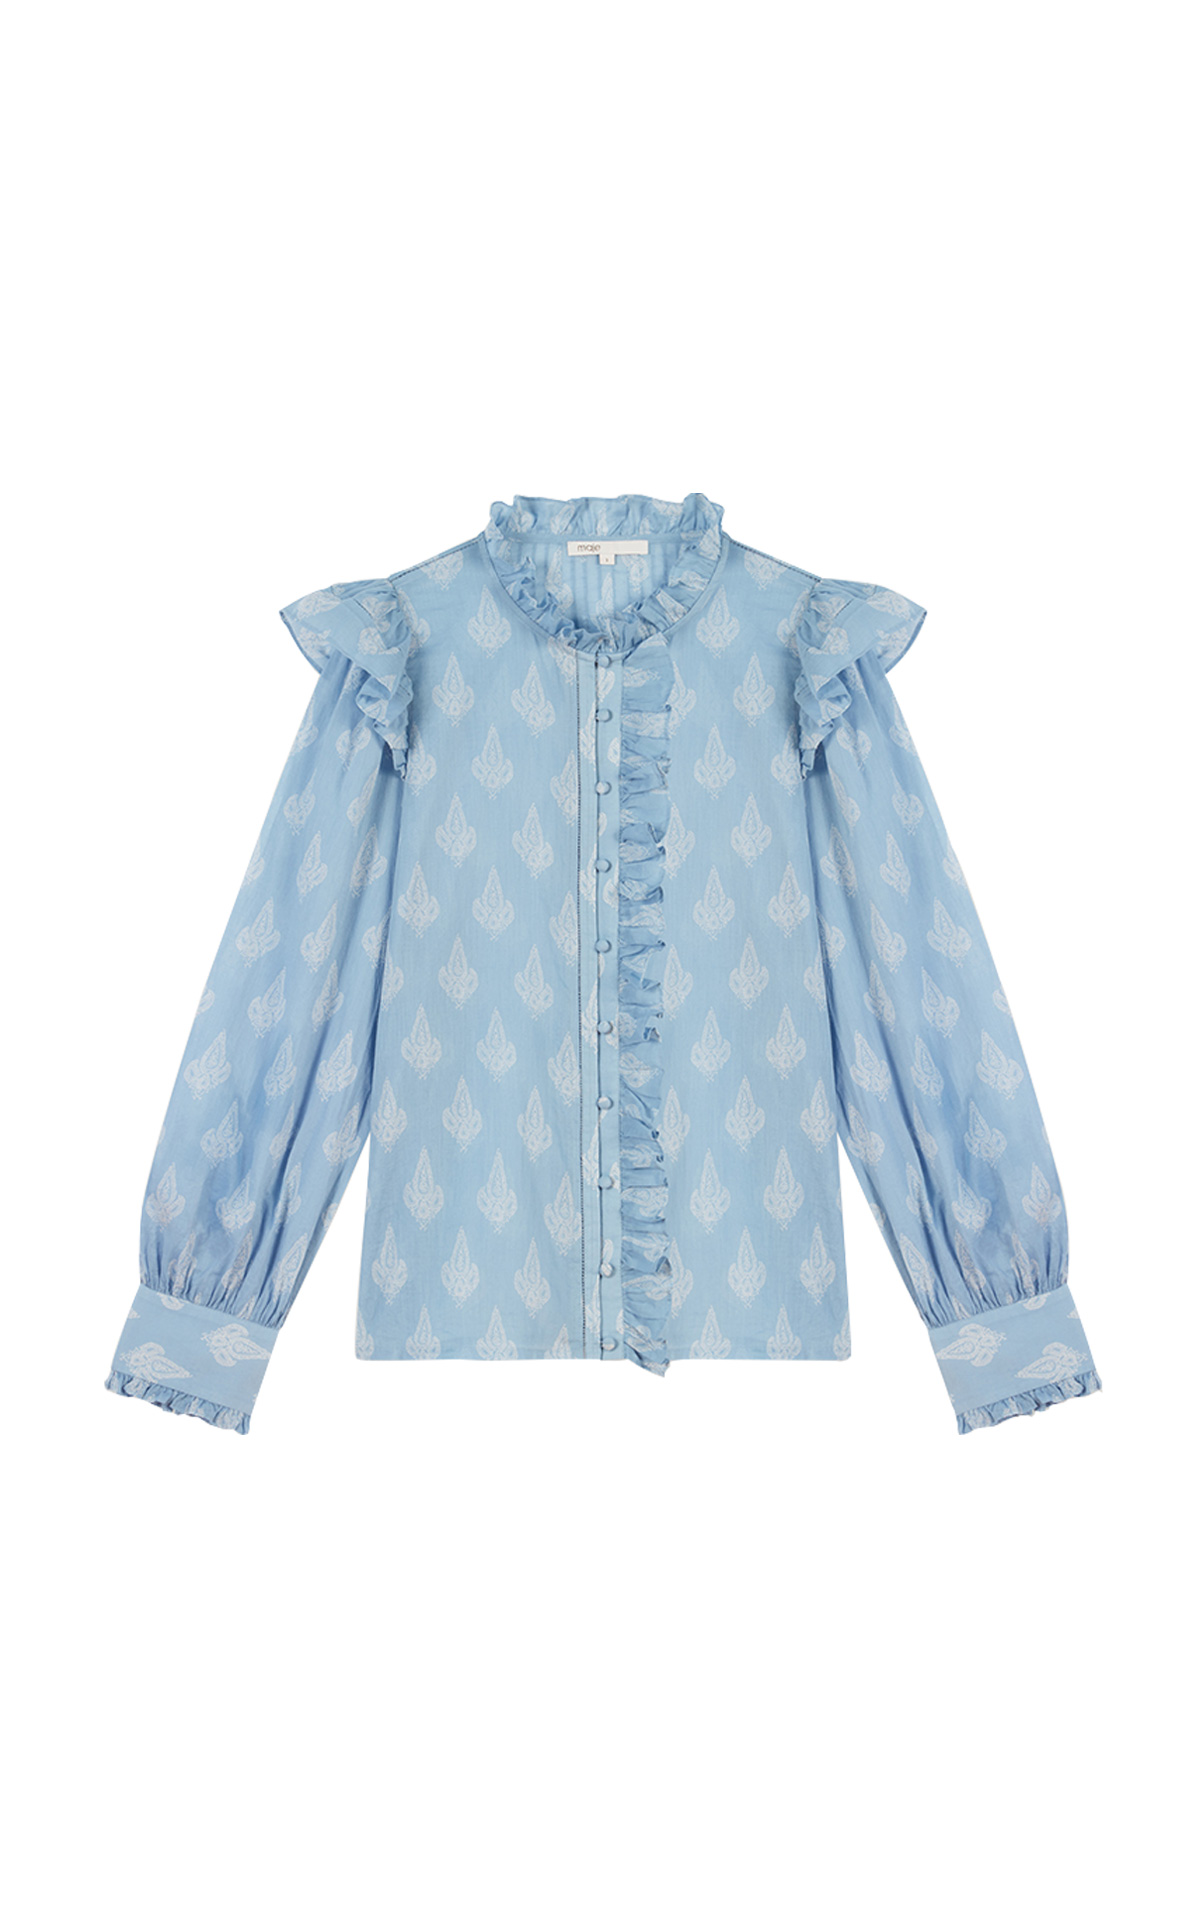 Maje printed cotton voile ruffled top at The Bicester Village Shopping Collection